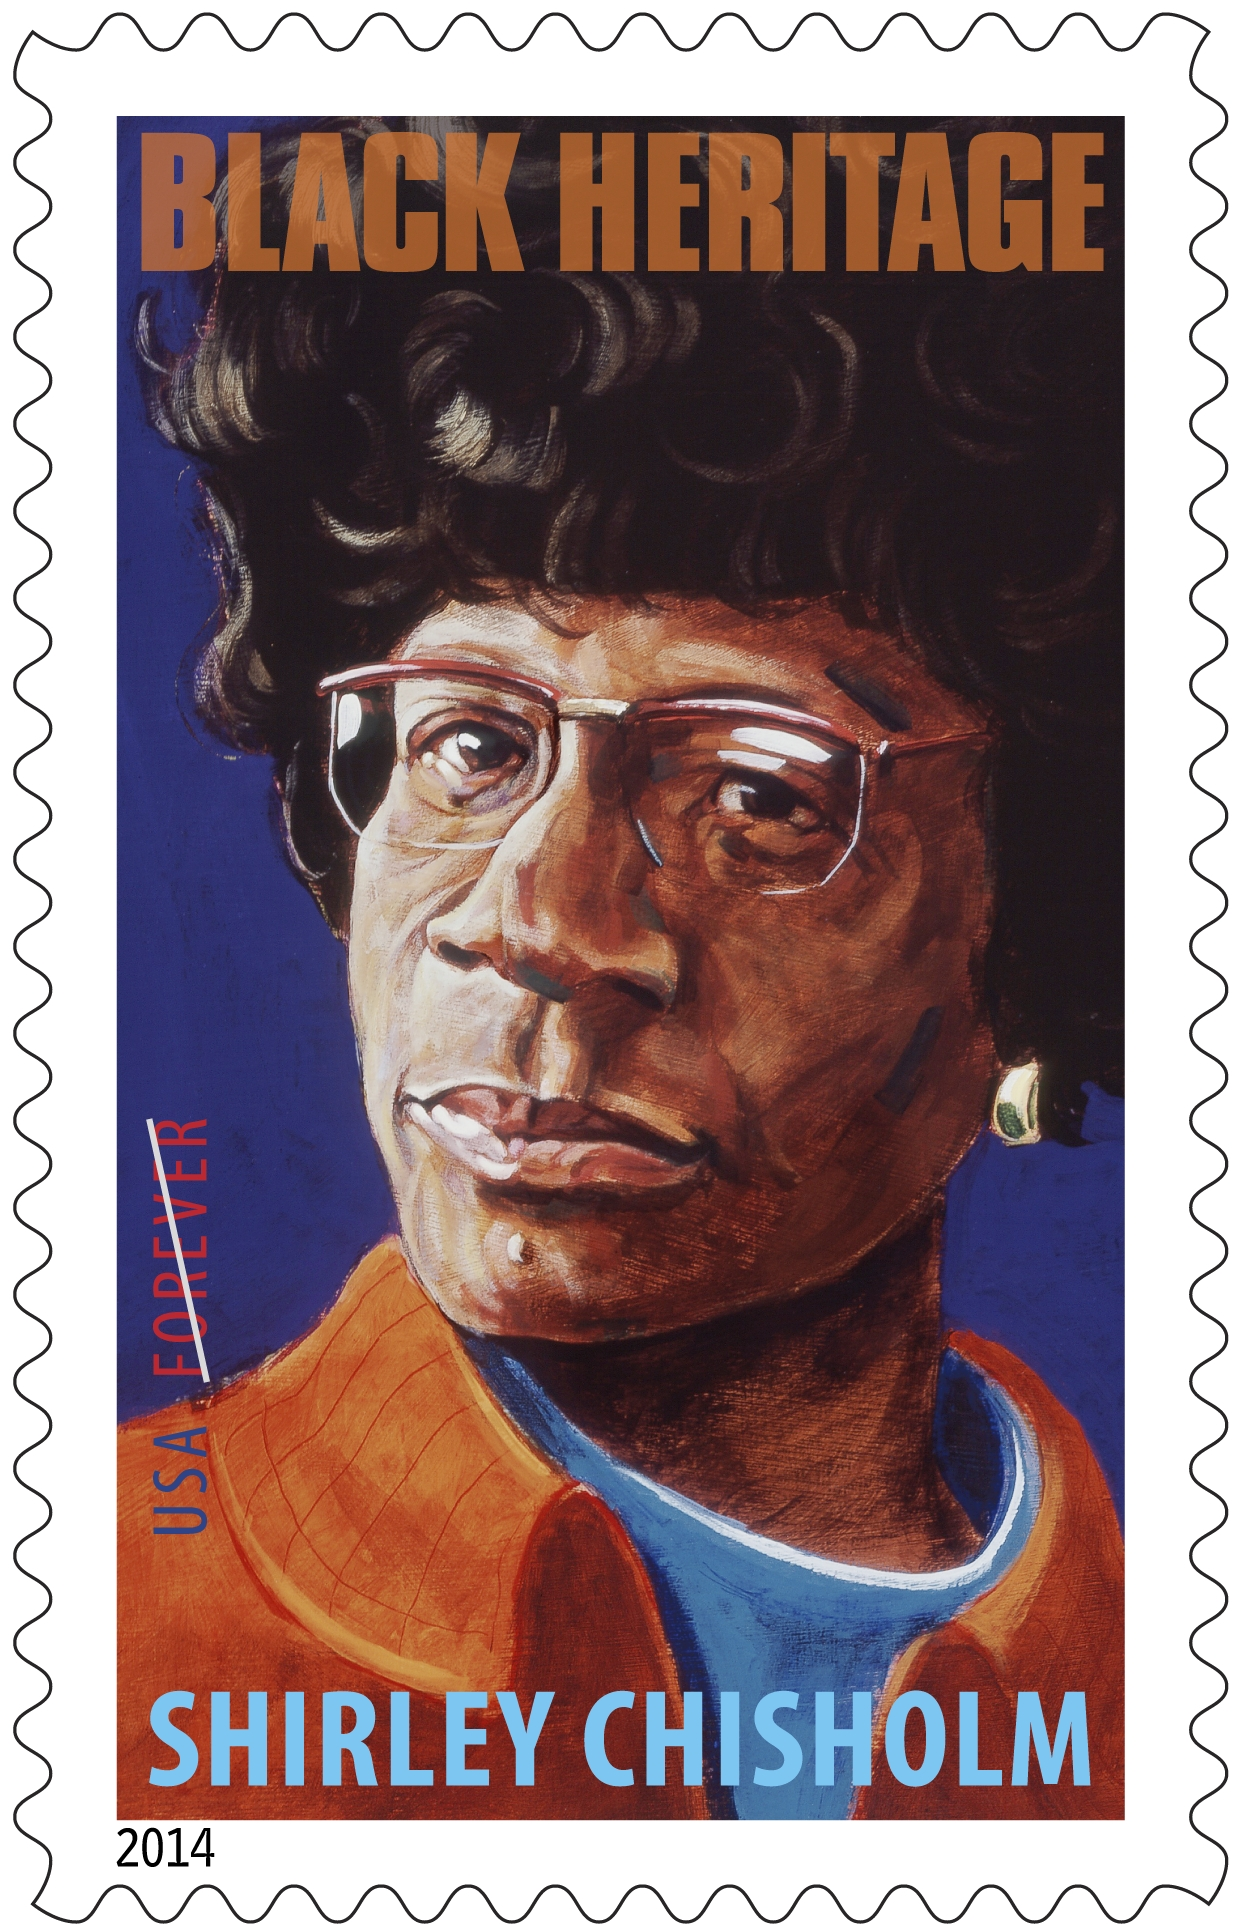 America Honors Brooklyn's Shirley Chisholm With a Stamp ...